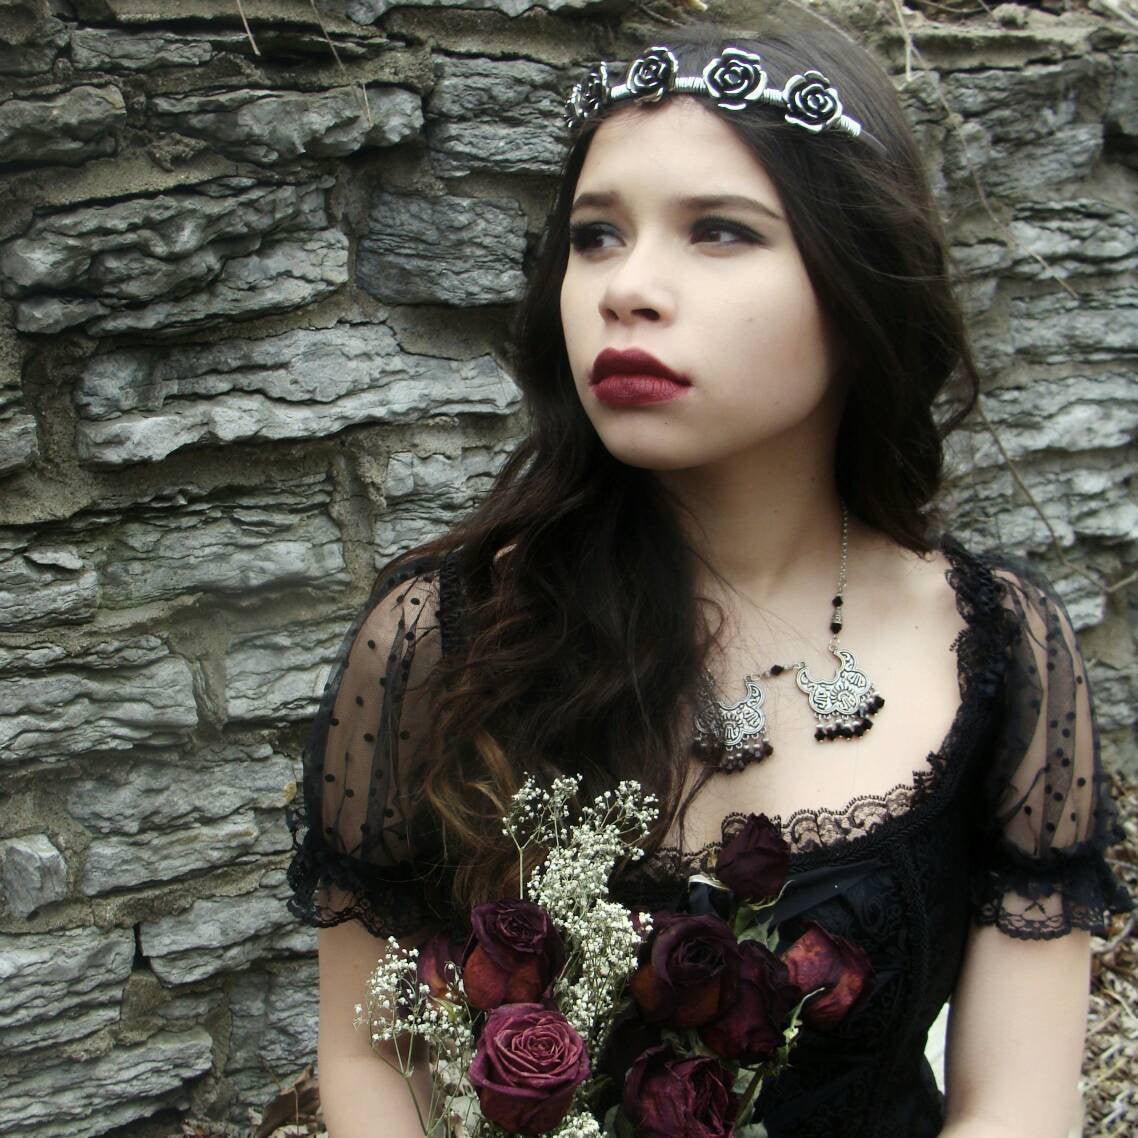 Rose Crown - Flower Crown - Ren Faire - Silver Headband - Bridal Jewelry - Handfasting - Queen Costume - Gothic Crown - Handmade Jewelry - Ren Faire - DRAVYNMOOR